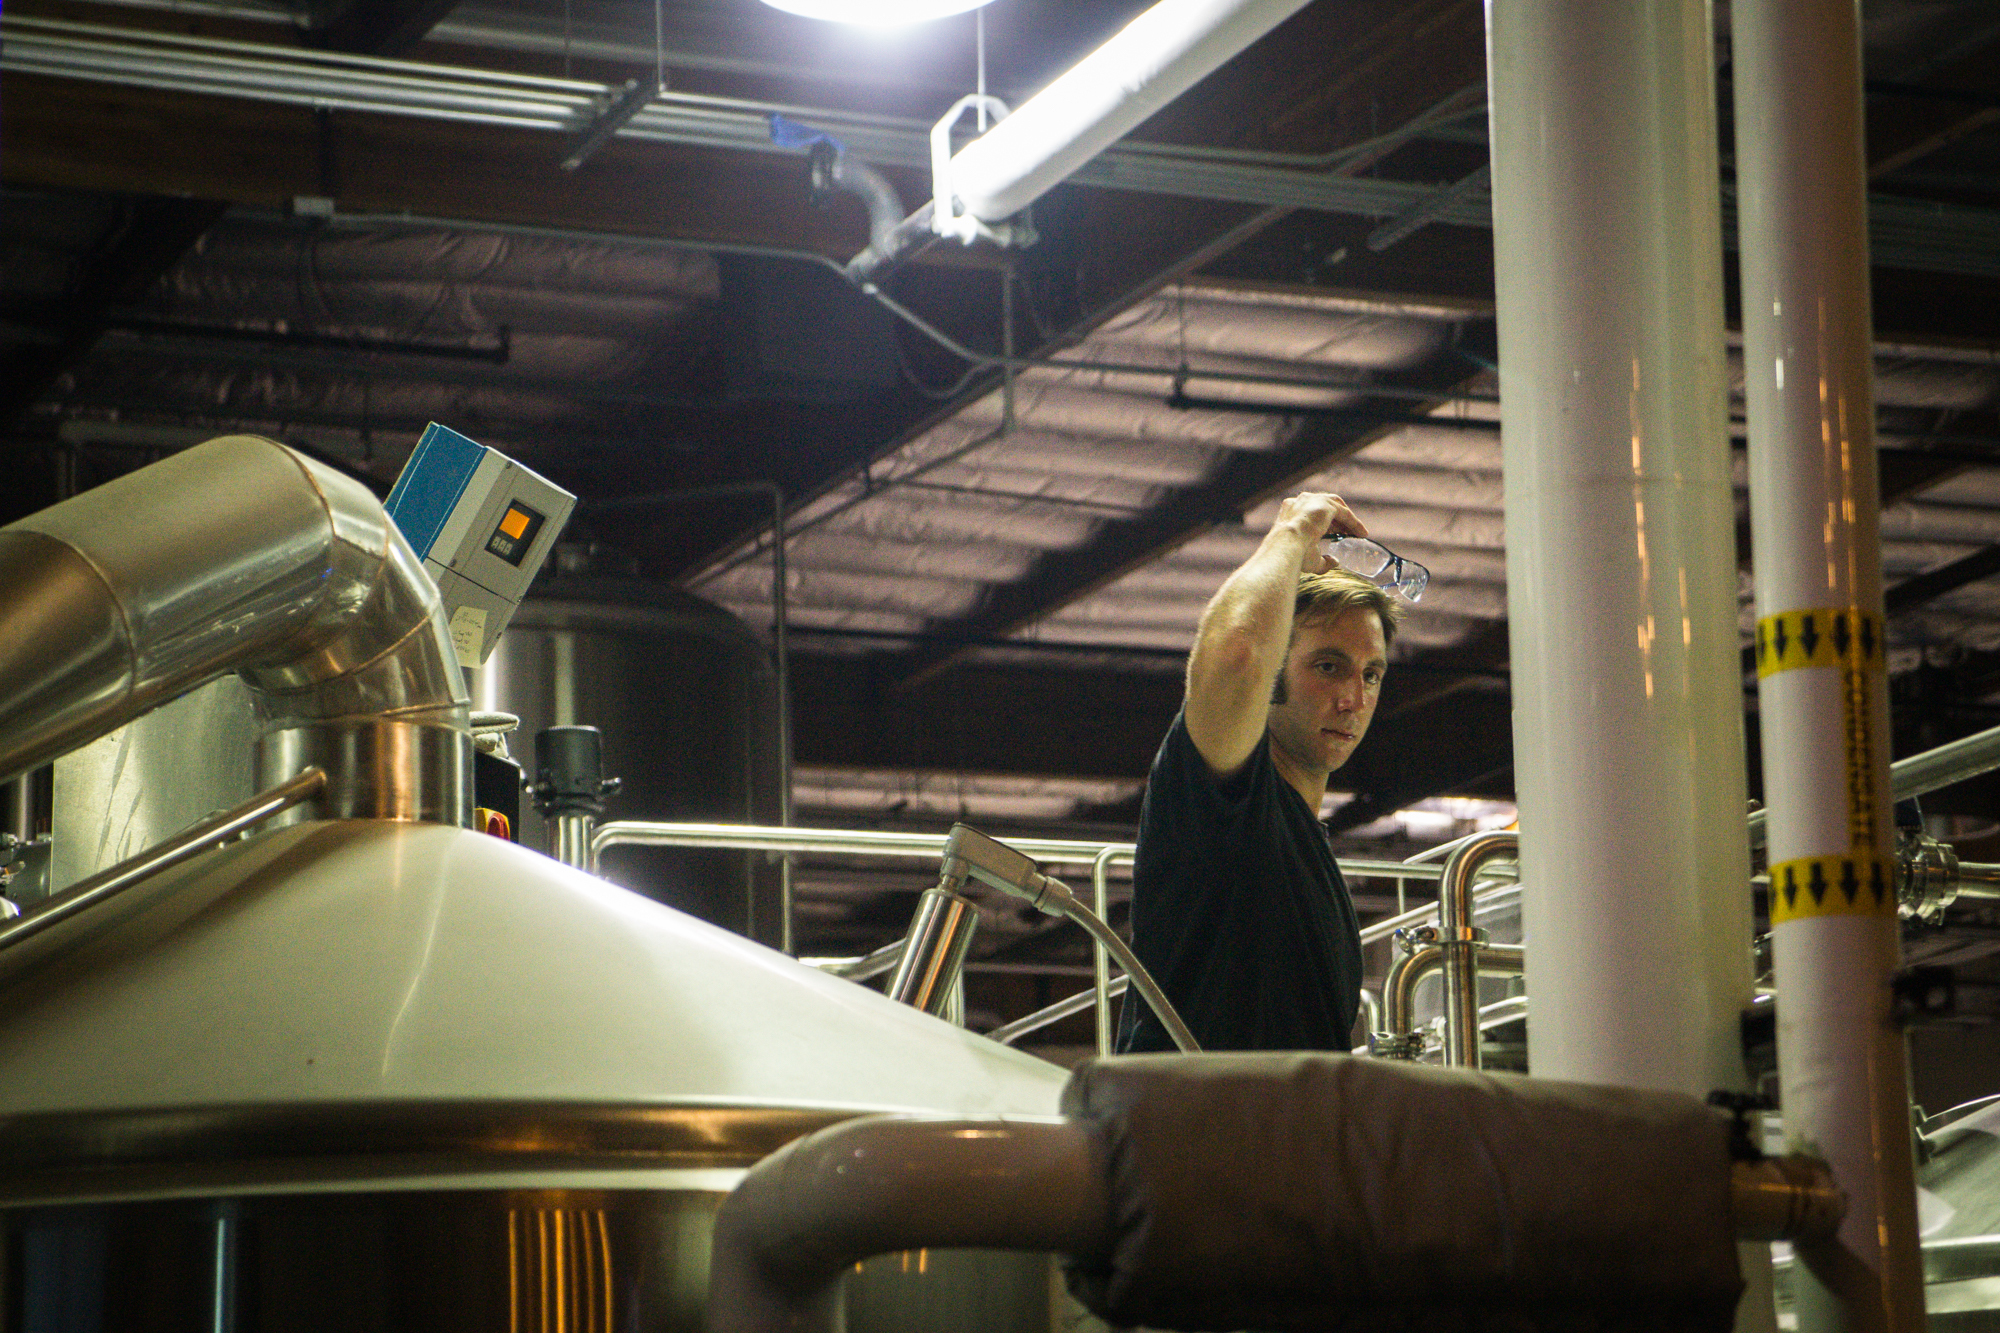 Here's a guy brewing beer, we assume.